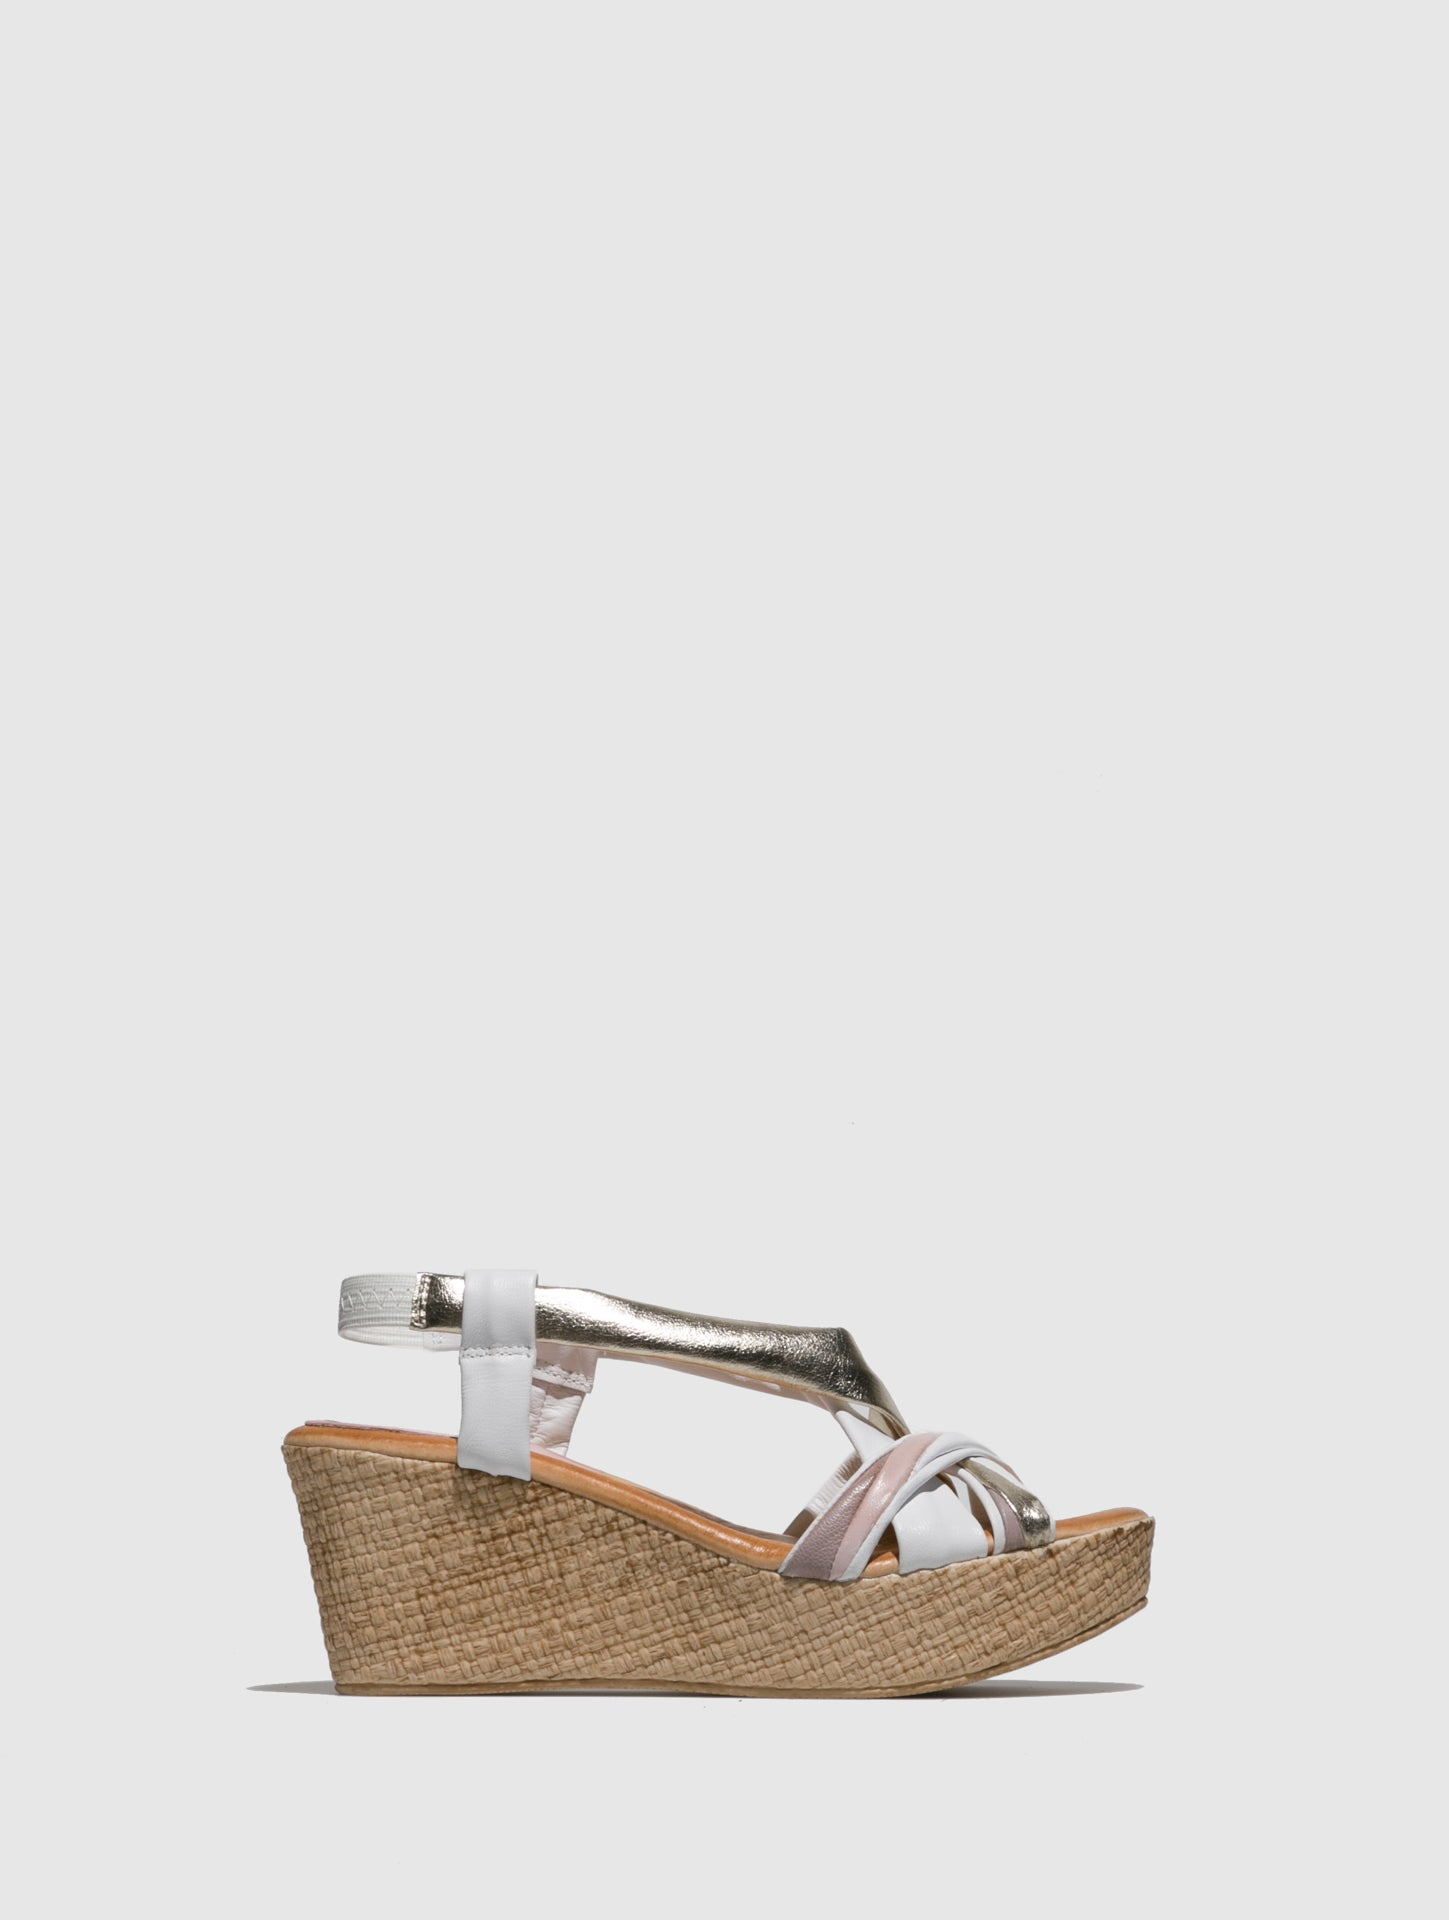 Marila Shoes Gold White Wedge Sandals